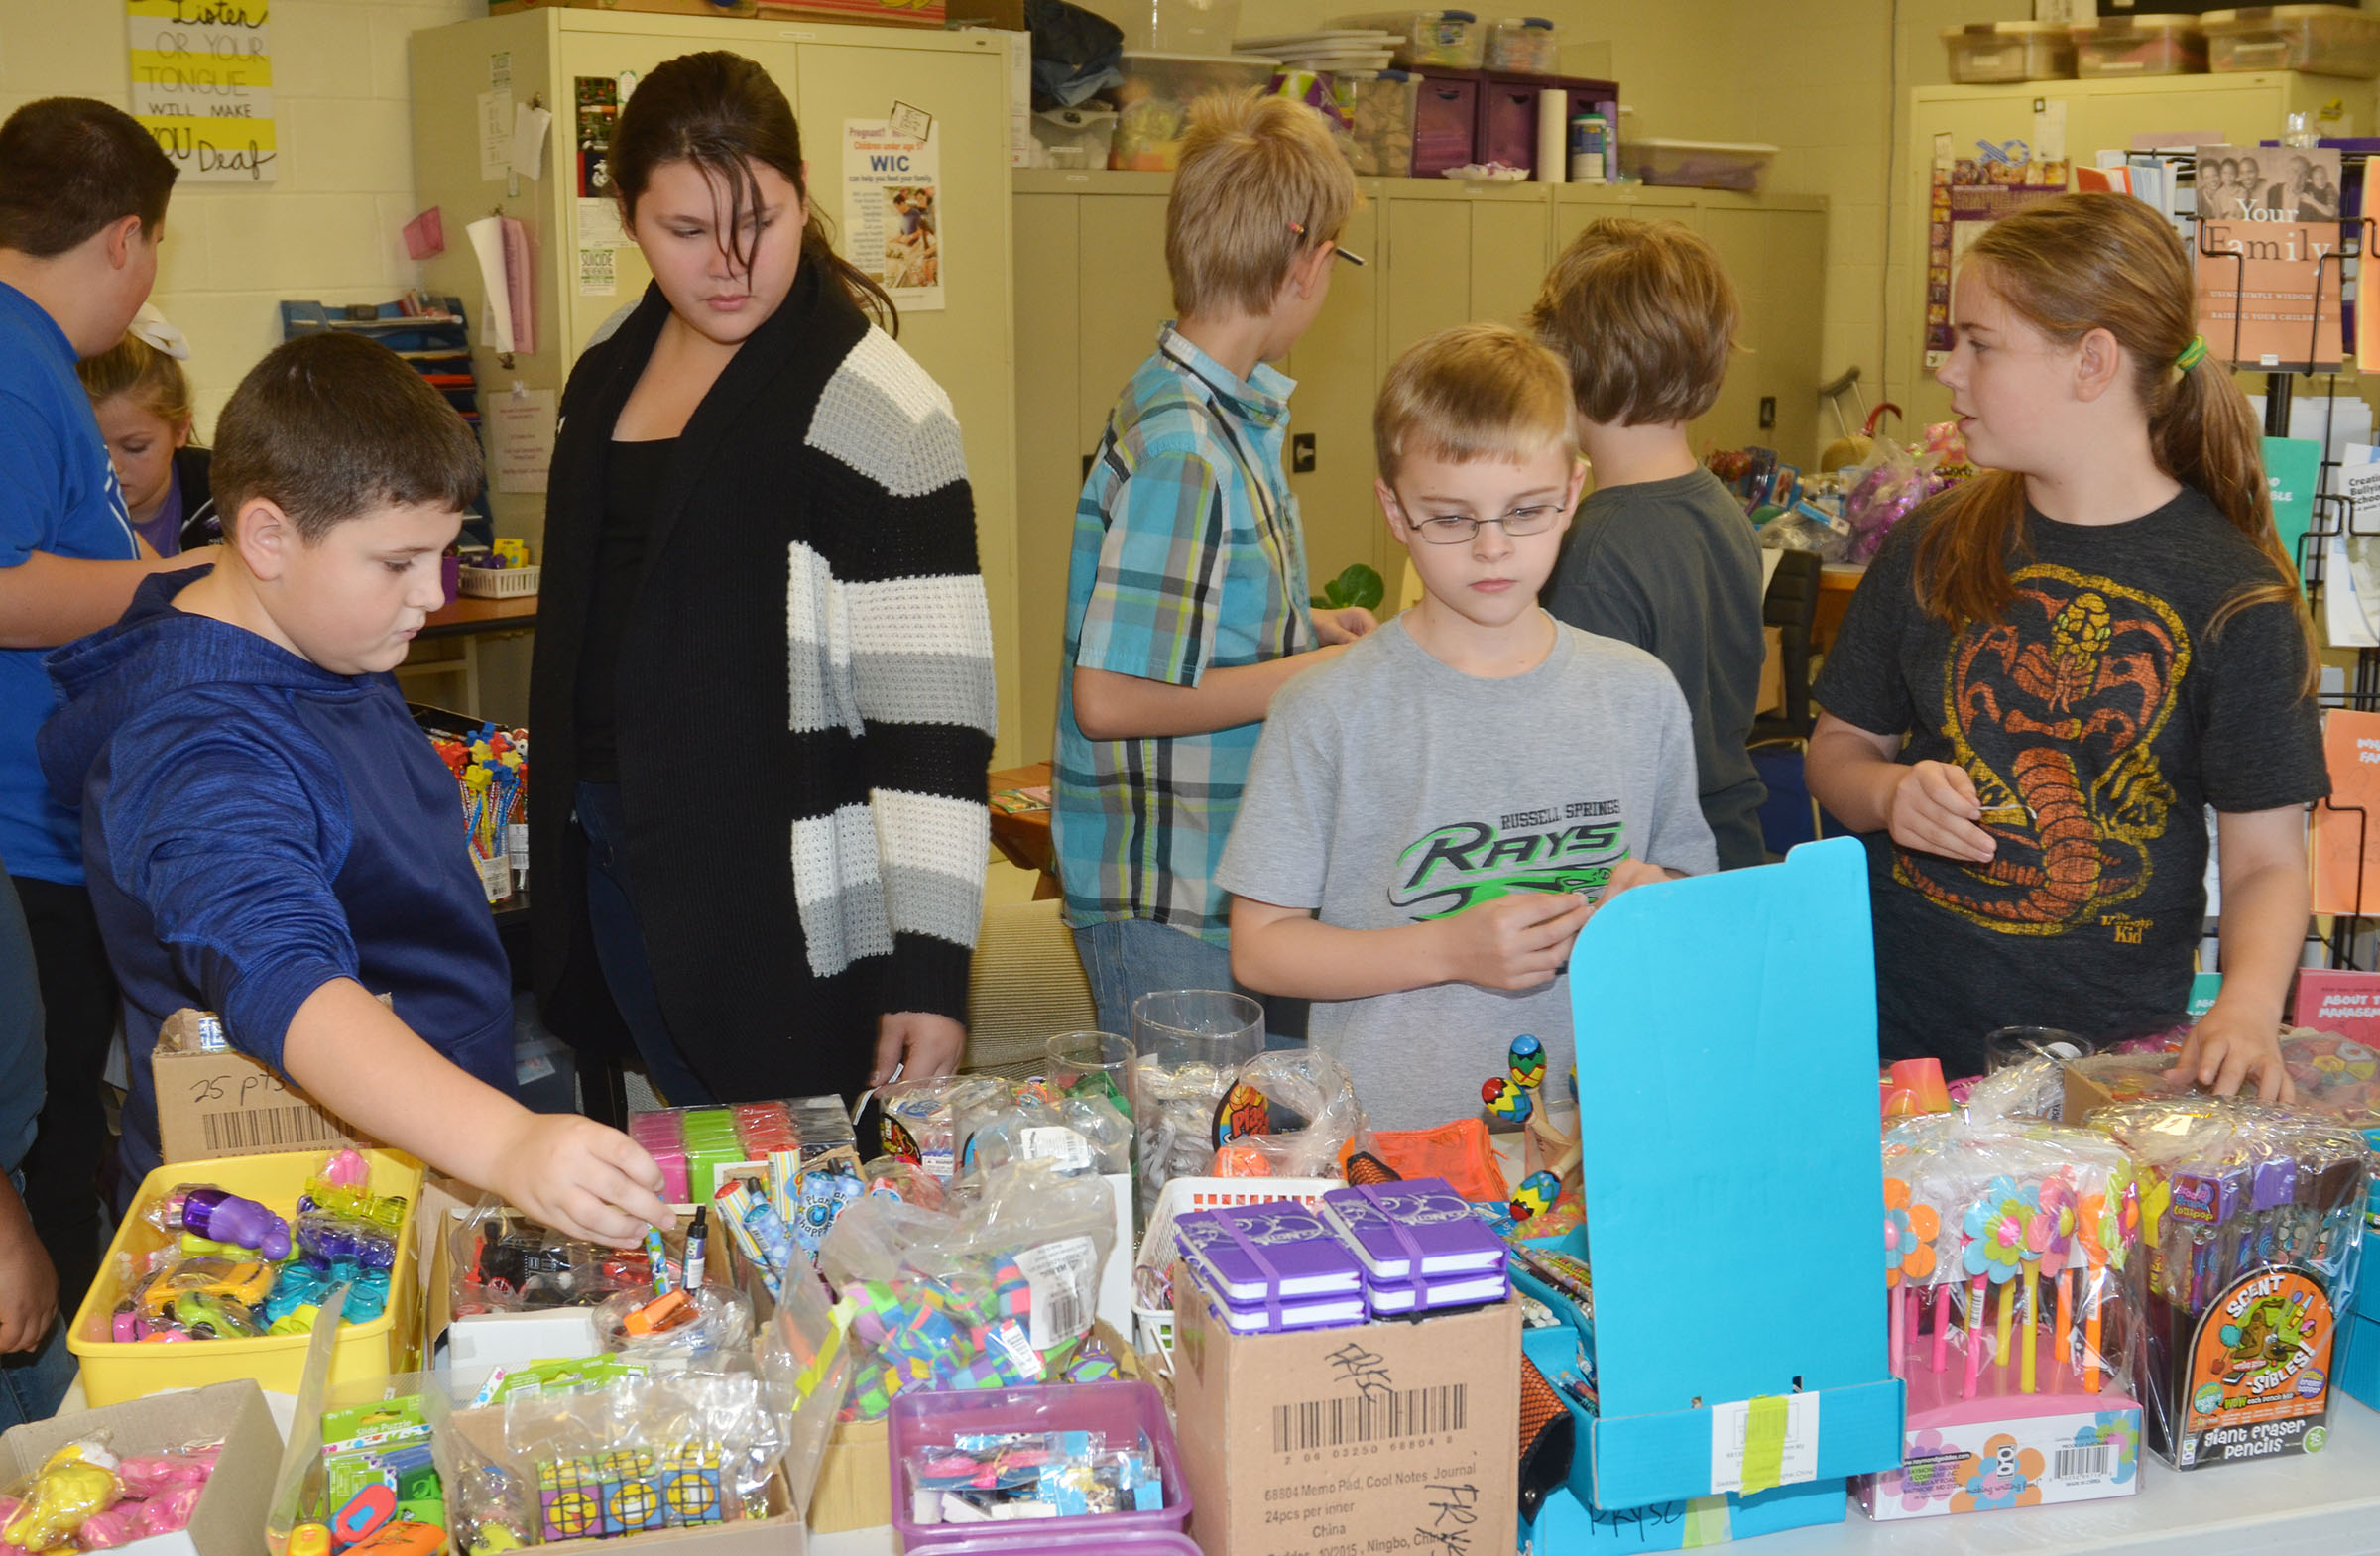 CMS students shop the AR store.